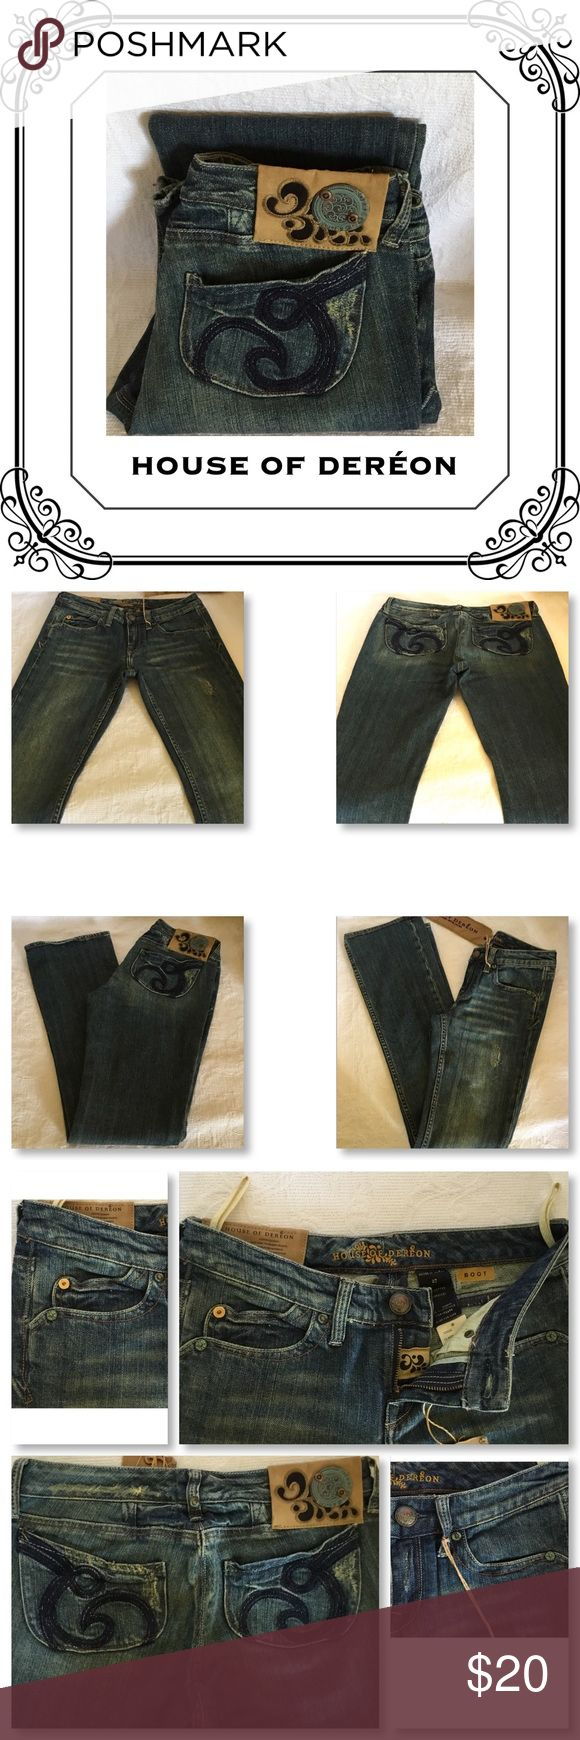 BOOT CUT NEW JEANS Price firm unless bundle NWT //   SIZE 27 //  SEE PIC FOR MEASUREMENTS.  PRICE FIRM UNLESS BUNDLE HOUSE OF DEREON Jeans Boot Cut